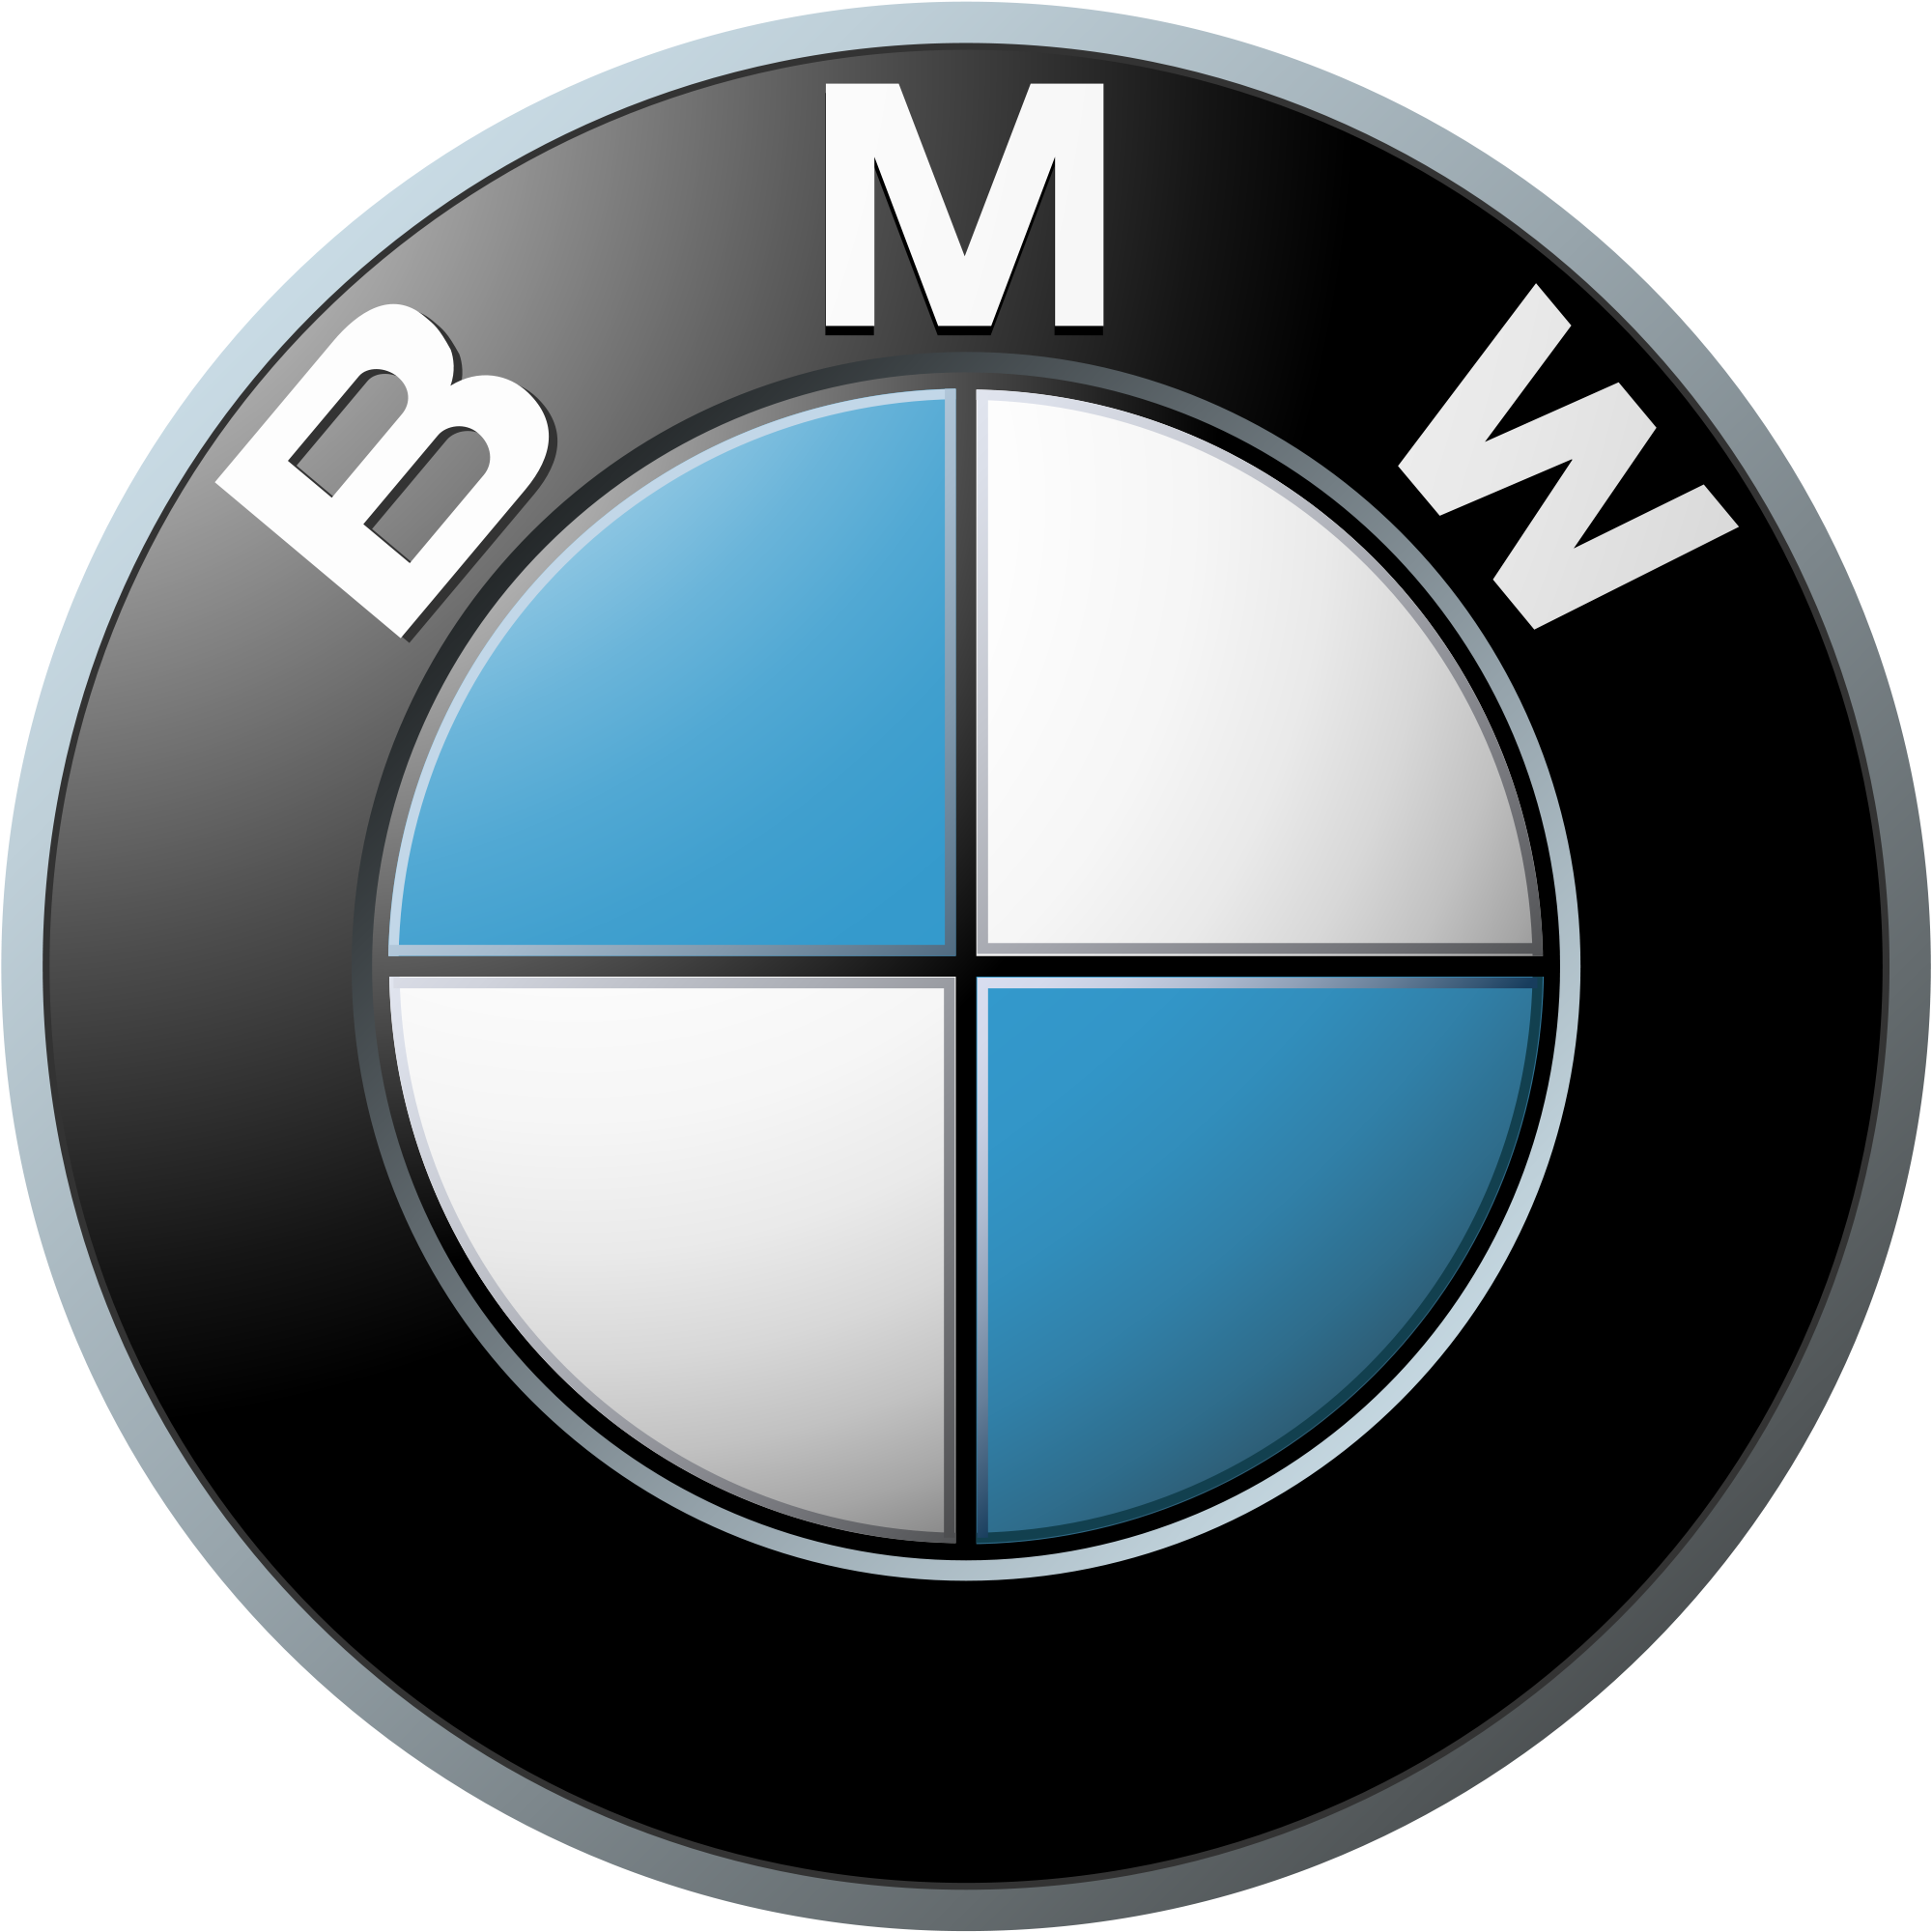 Bmw icon png. Web icons